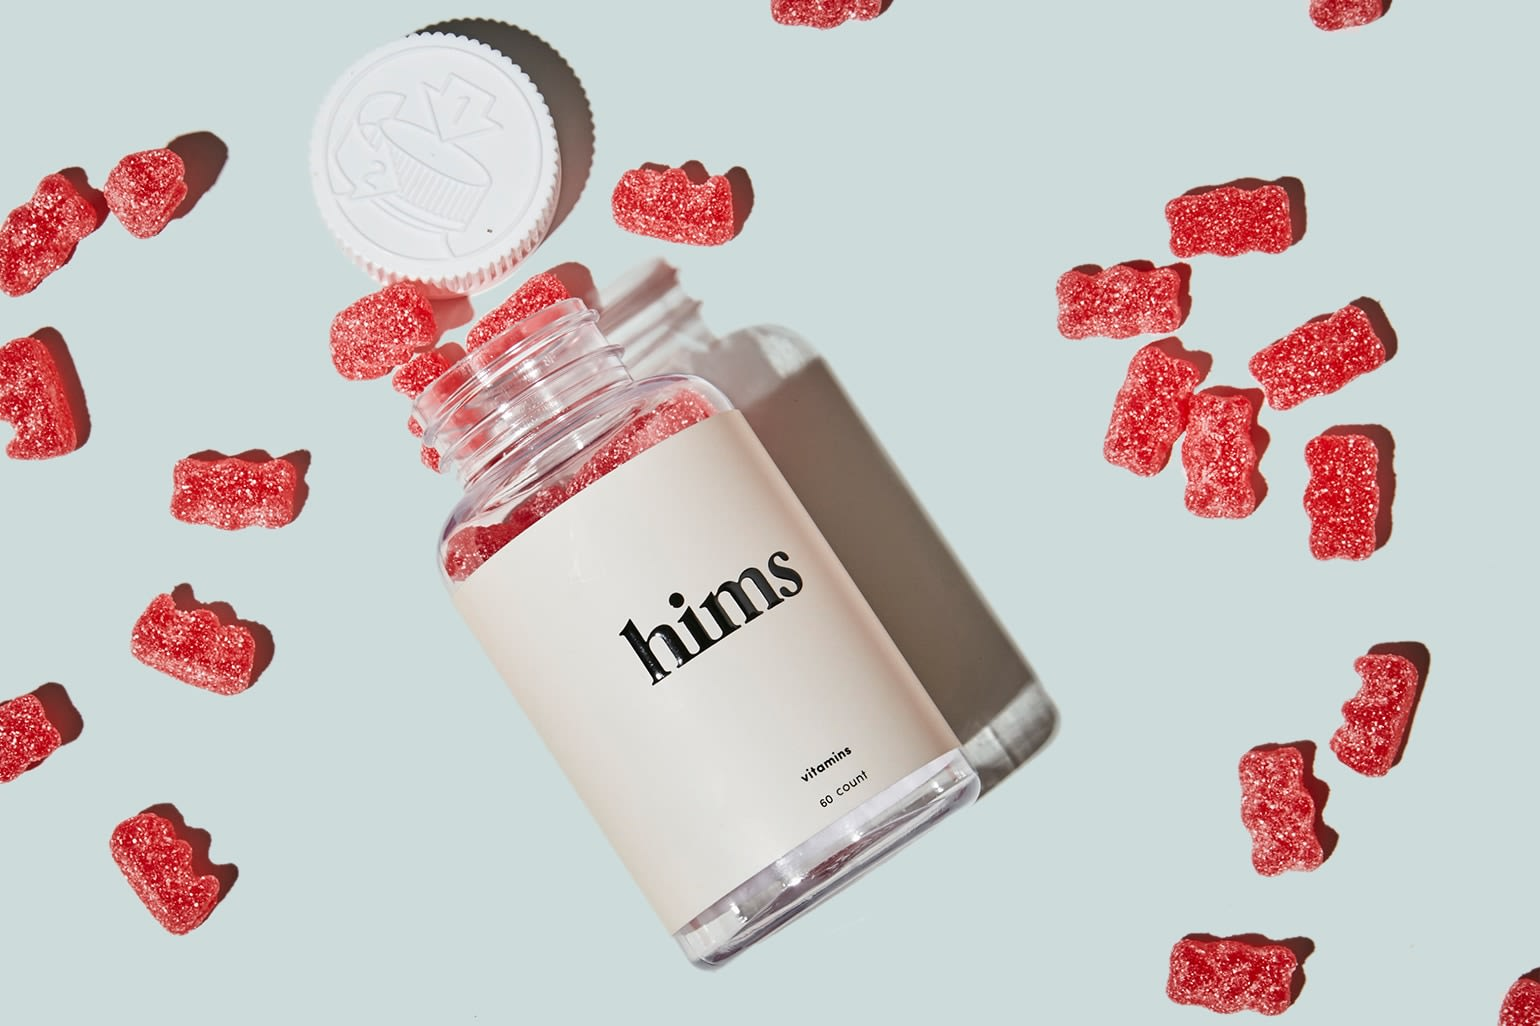 A bottle of red gummies with its lid off, and more gummies spread around